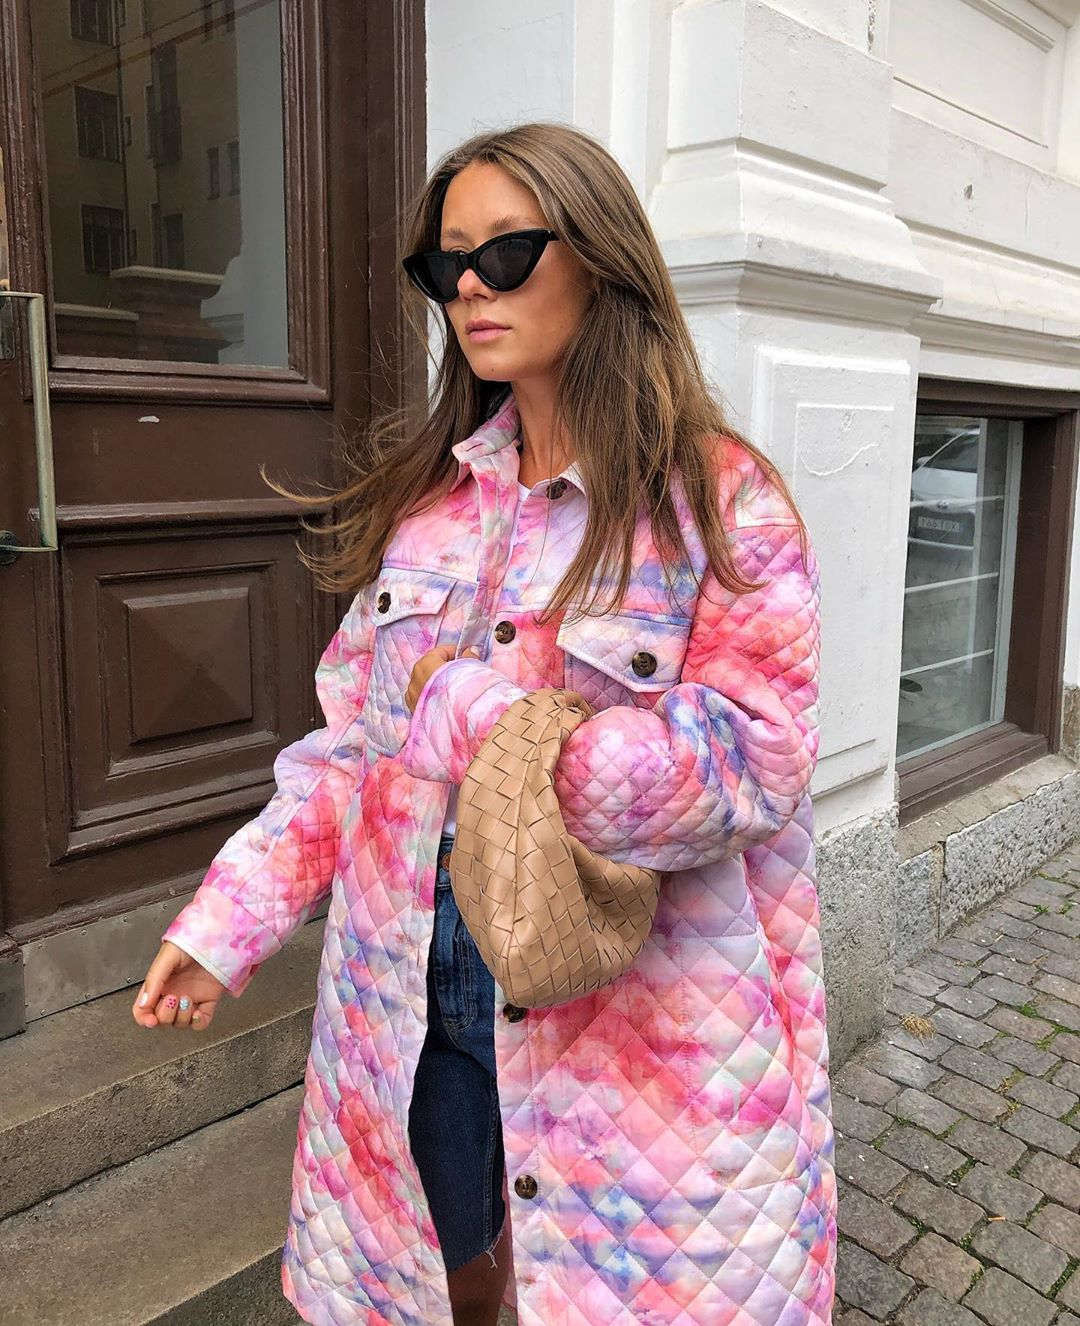 malvina-sofie-munthe-lunaria-quilted-padded-jacket-instagram